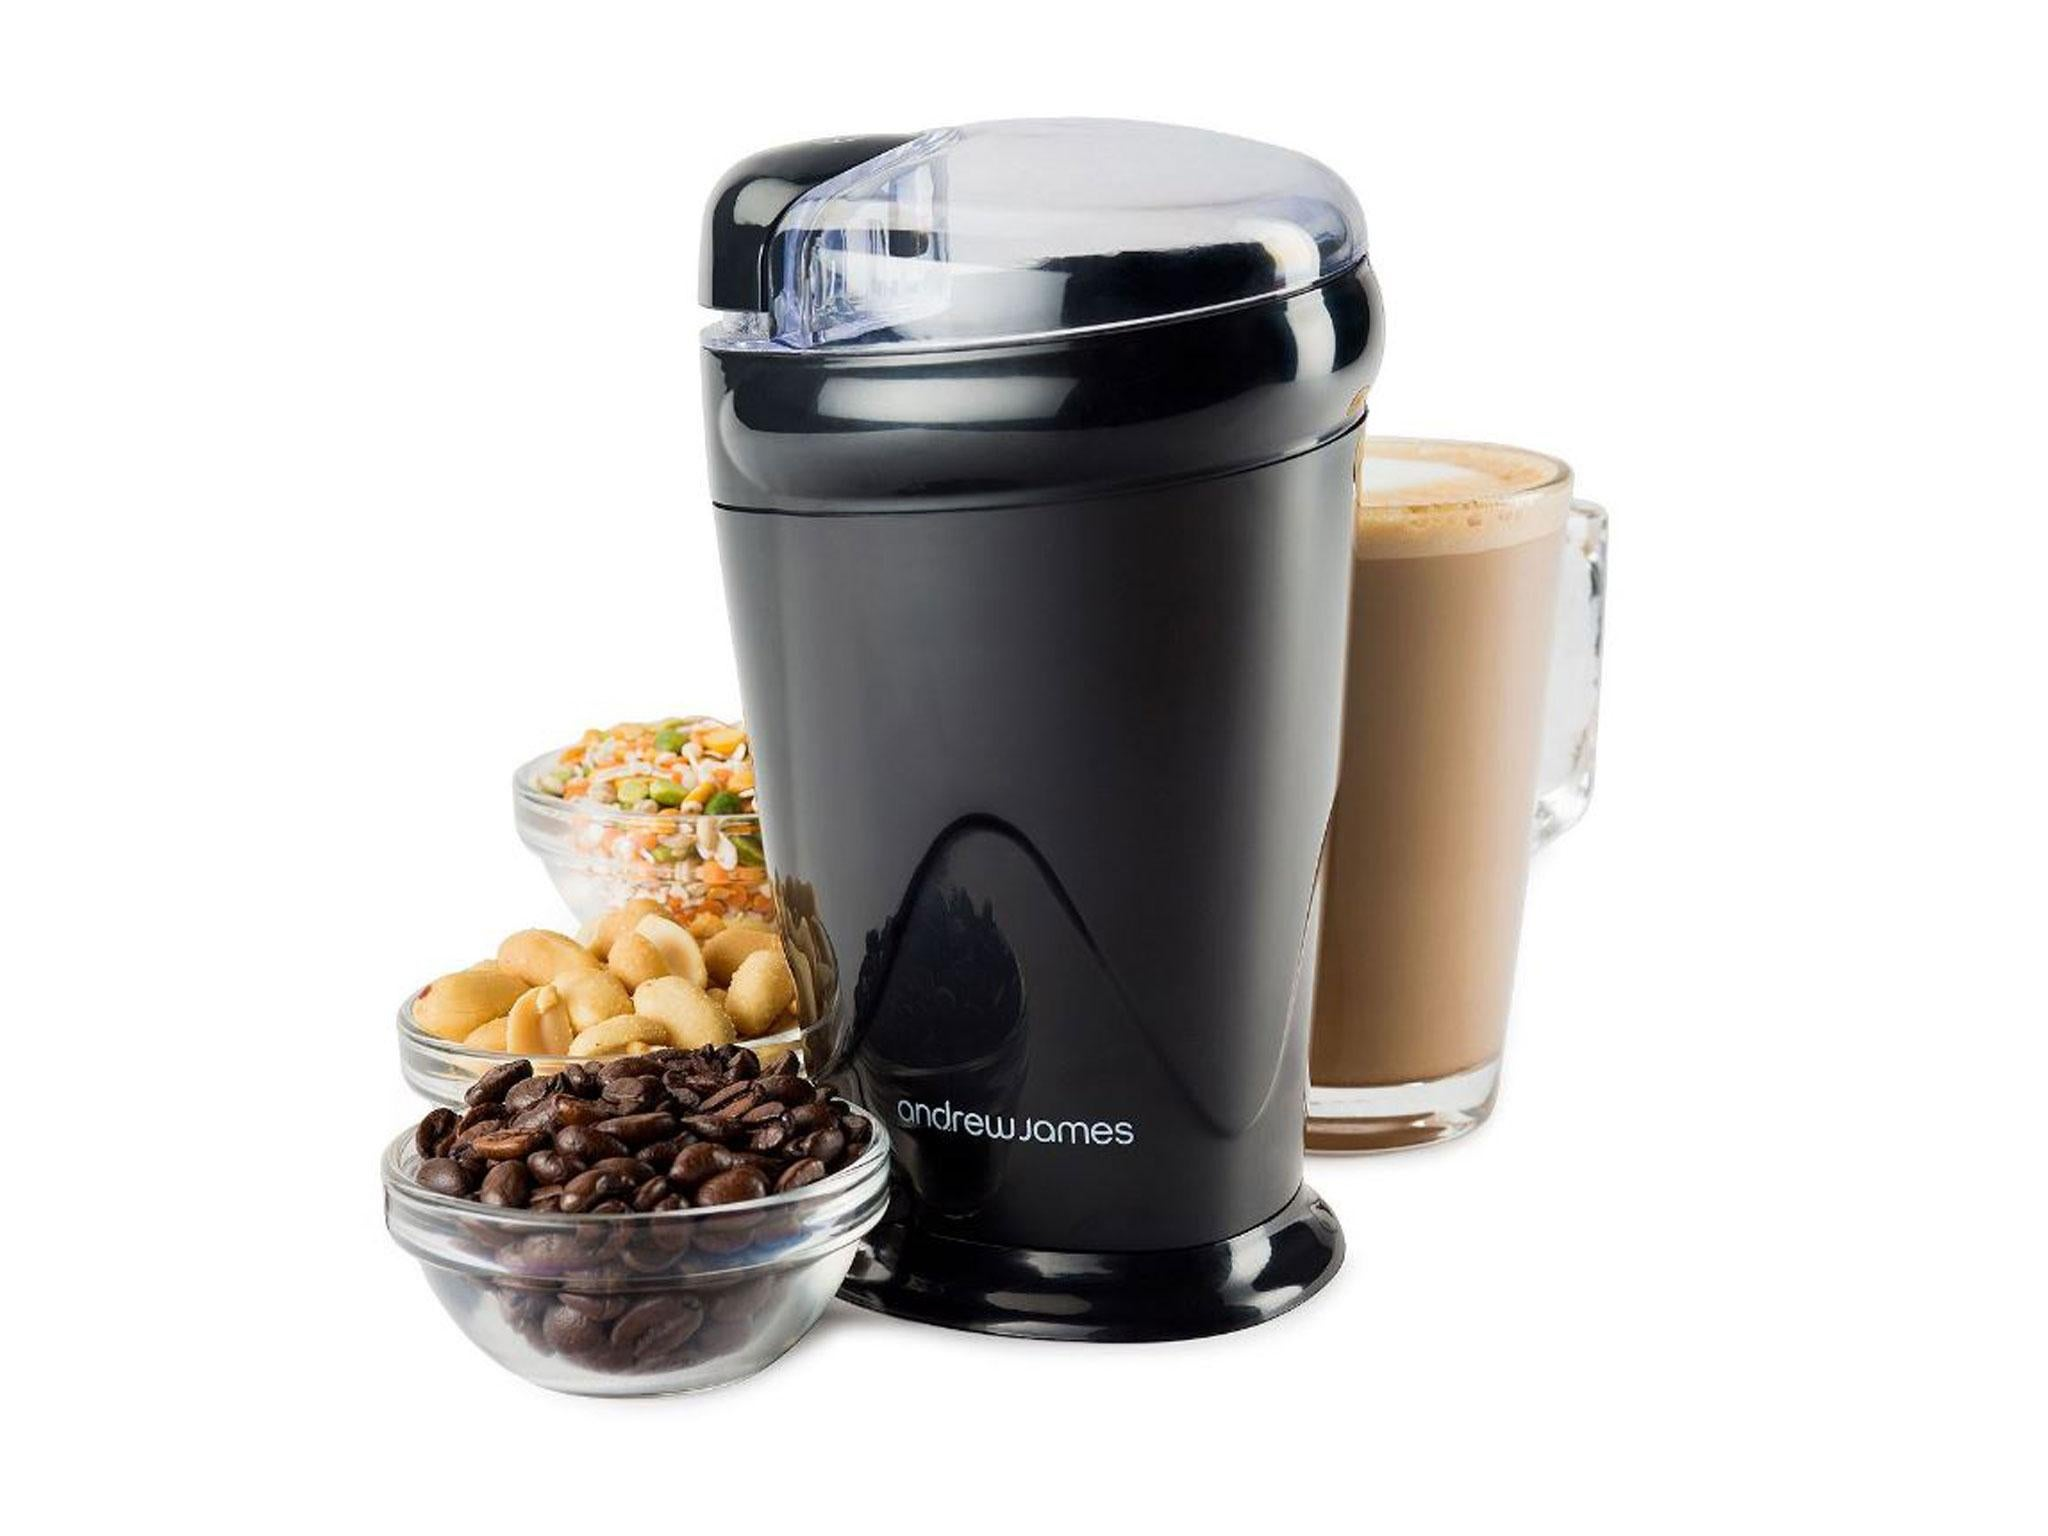 Electric coffee grinder. Characteristics, reviews, prices 39